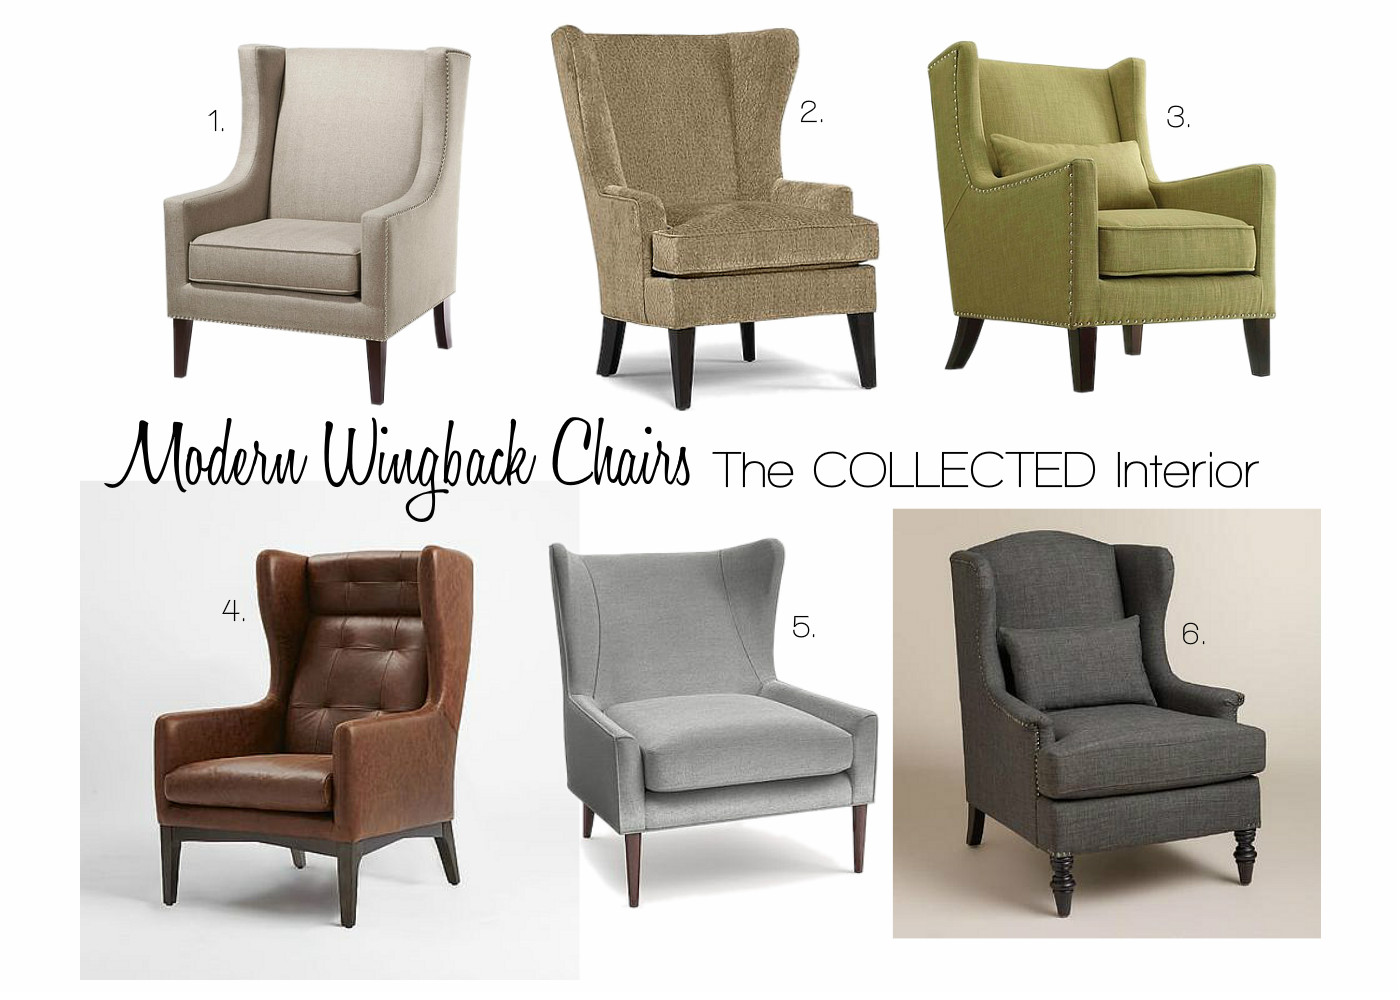 Design Crush   Modern Wingback Chairs!